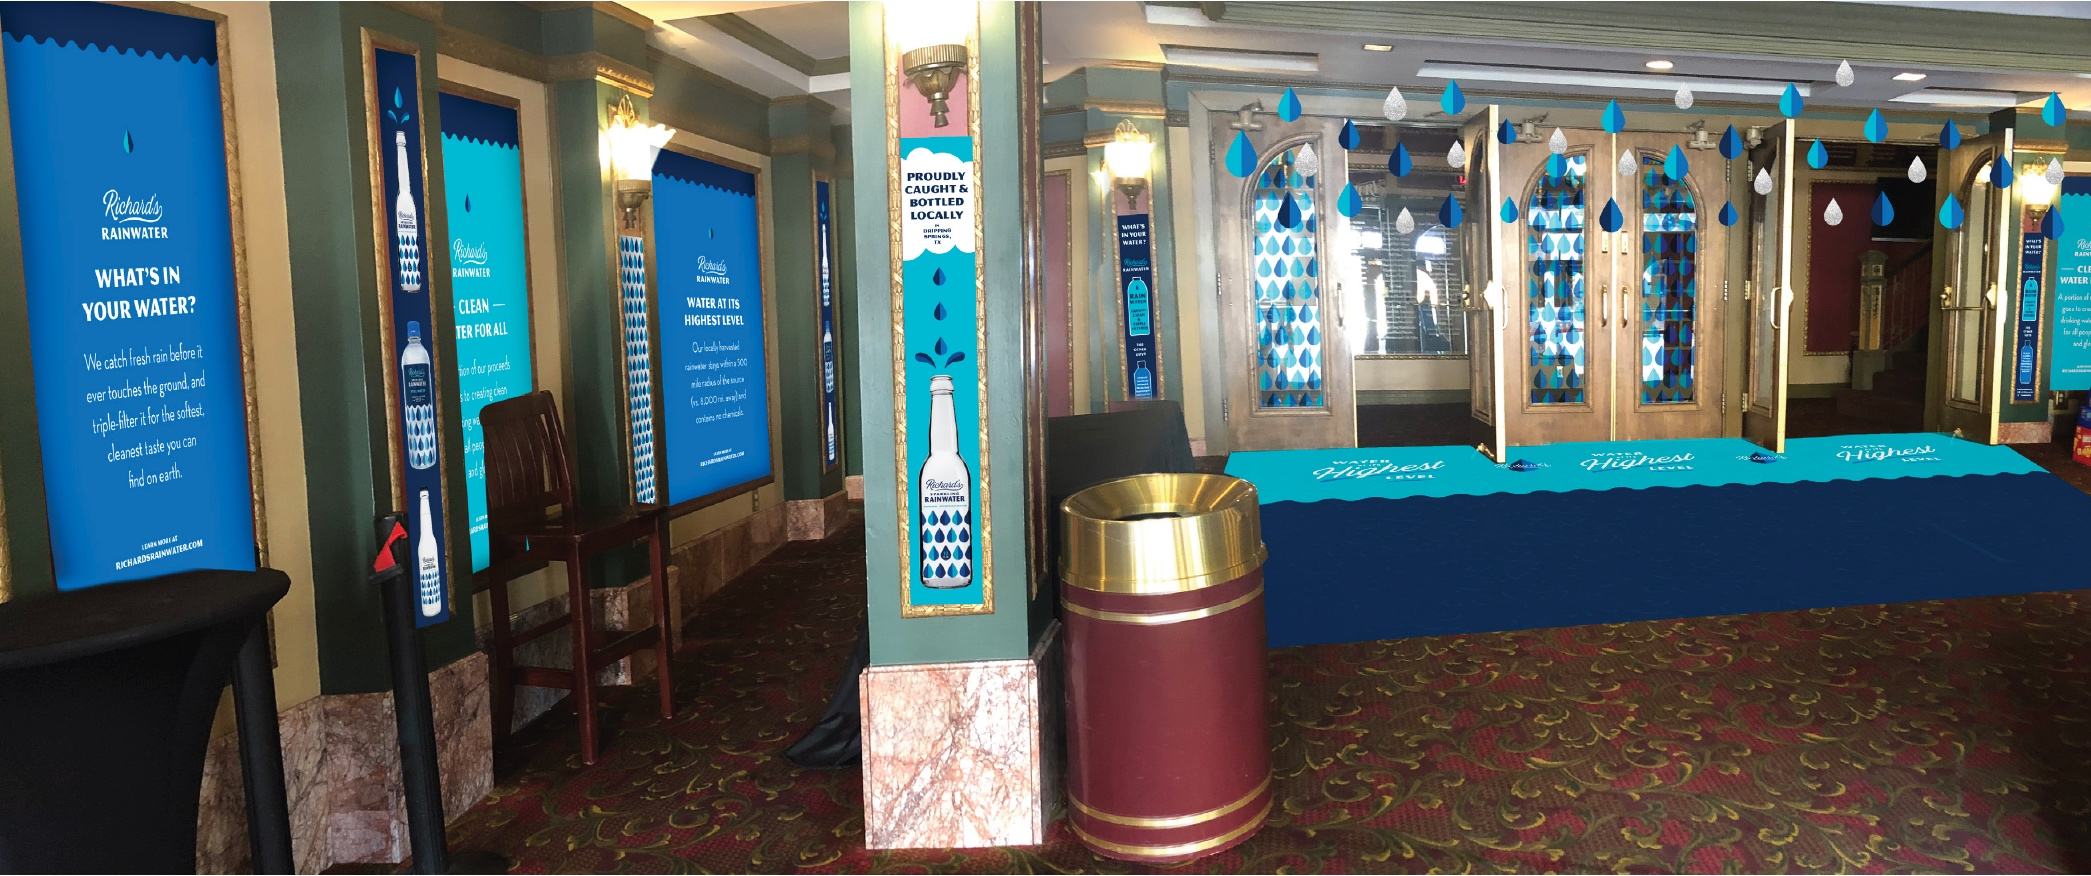 Richards+Rainwater_Paramount+Theater+Event+Activation_Front+of+House+Design.jpg